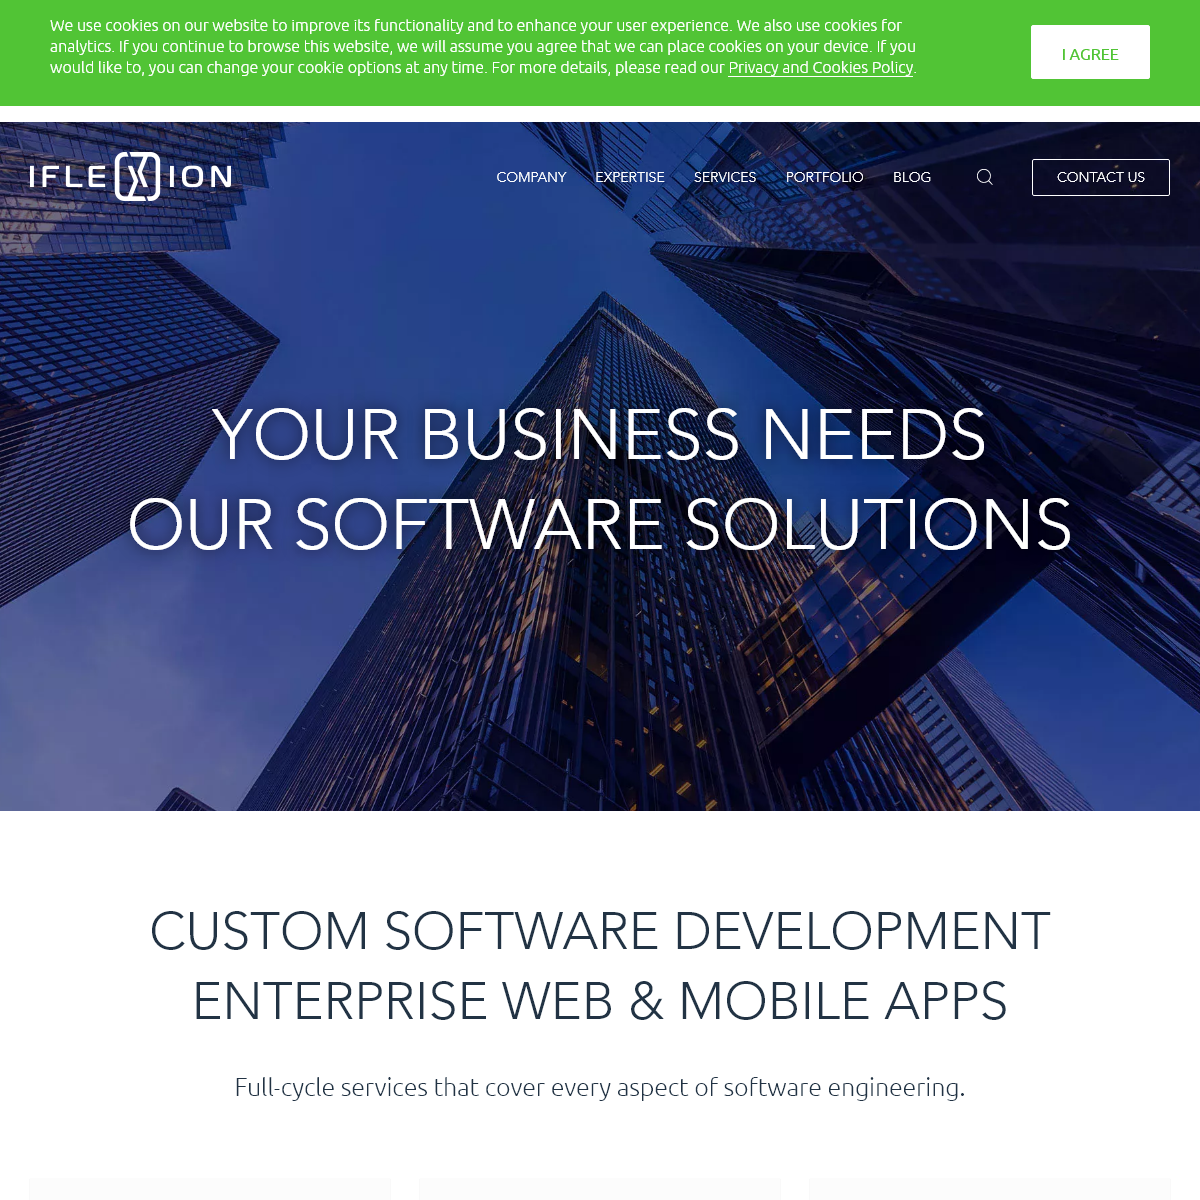 Custom Software Development - Iflexion